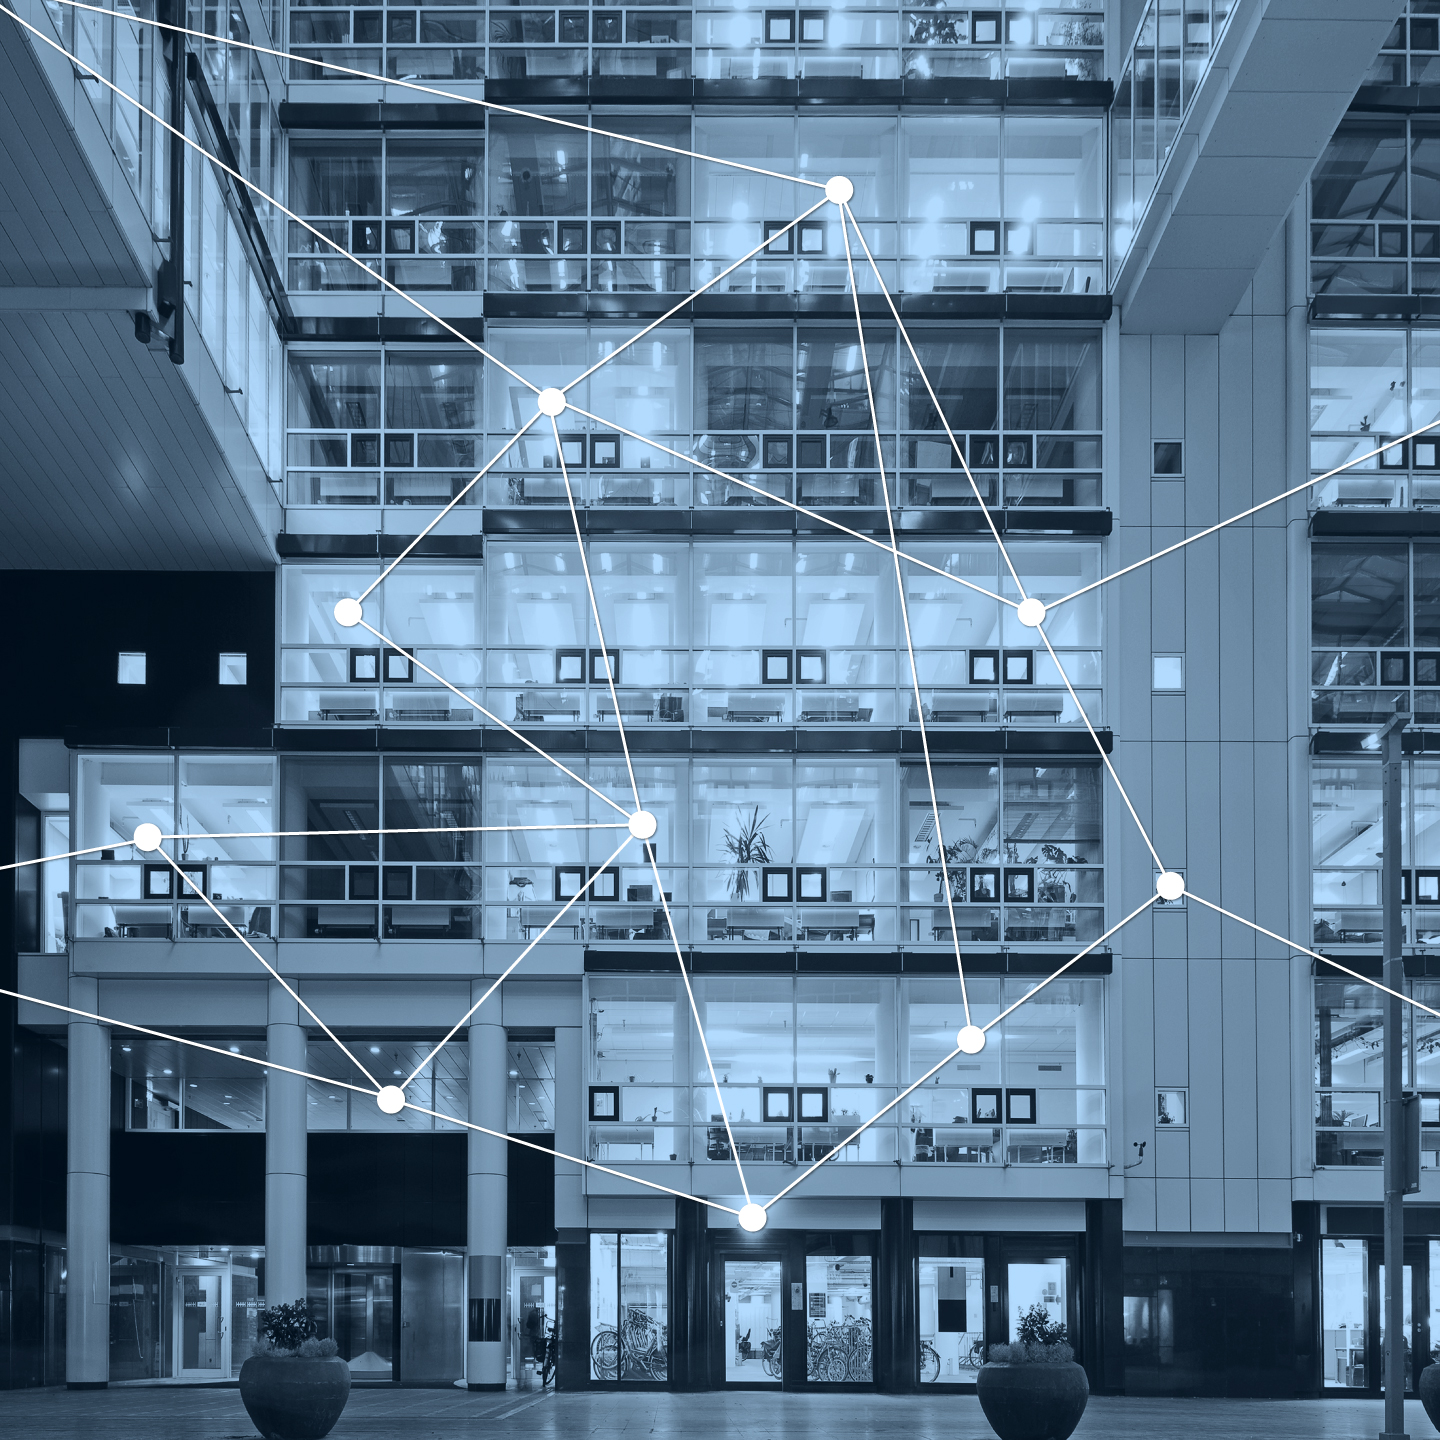 Smart buildings can be a leading light in the IoT